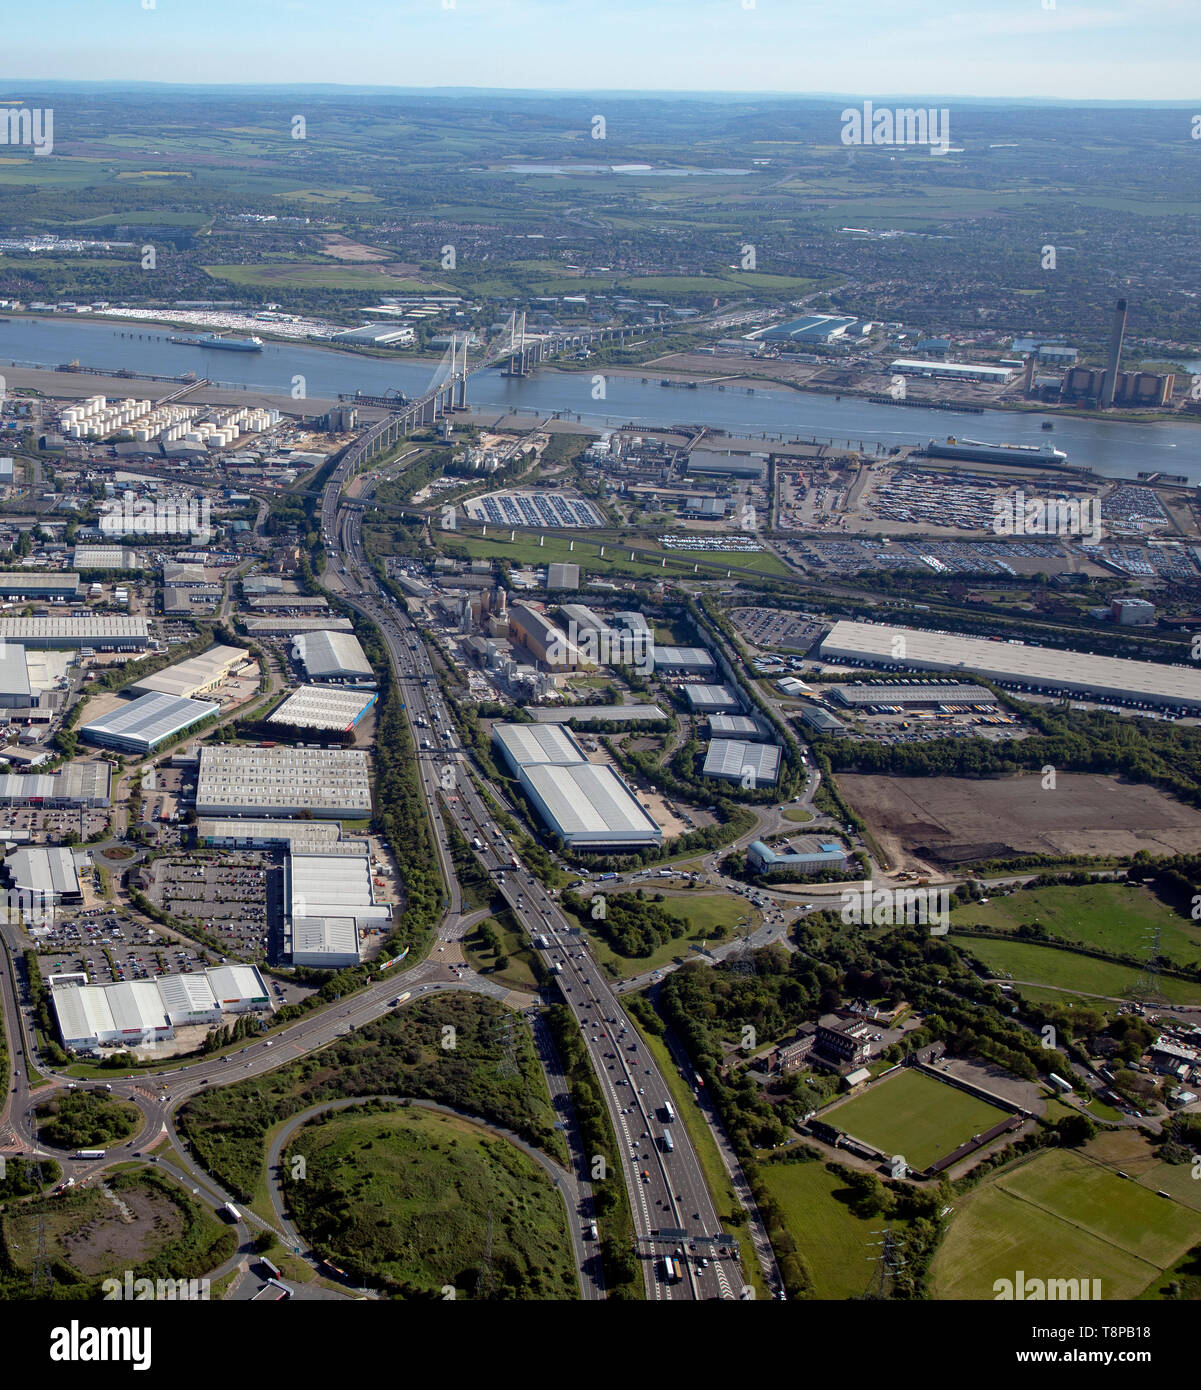 aerial view of the A282 (from over the M25) looking South towards the QE2 Bridge,Thurrock, Essex - Stock Image